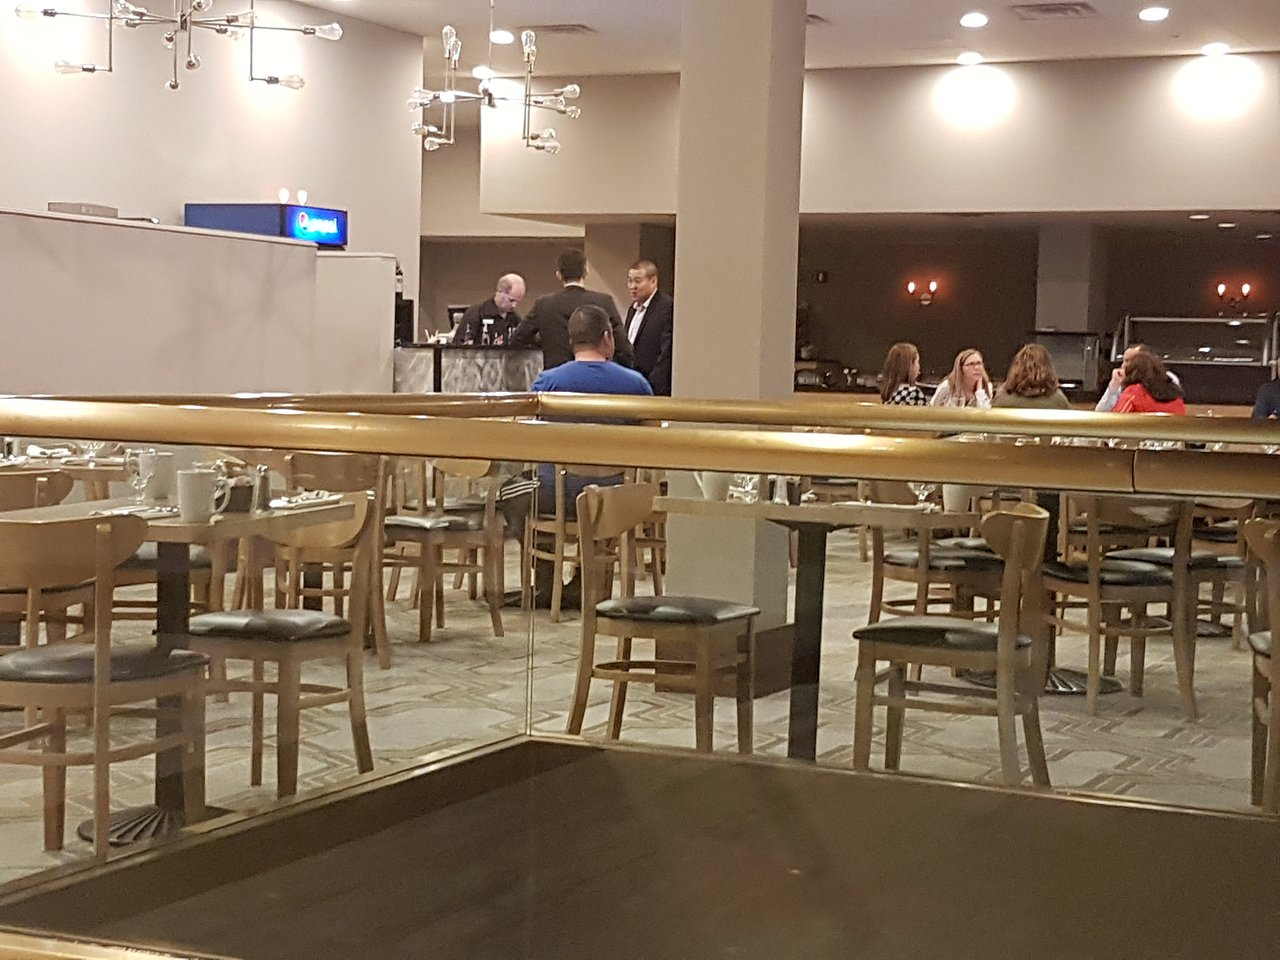 DOUBLETREE HOTEL CHICAGO OAK BROOK (IL) - Reviews, Photos & Price ...